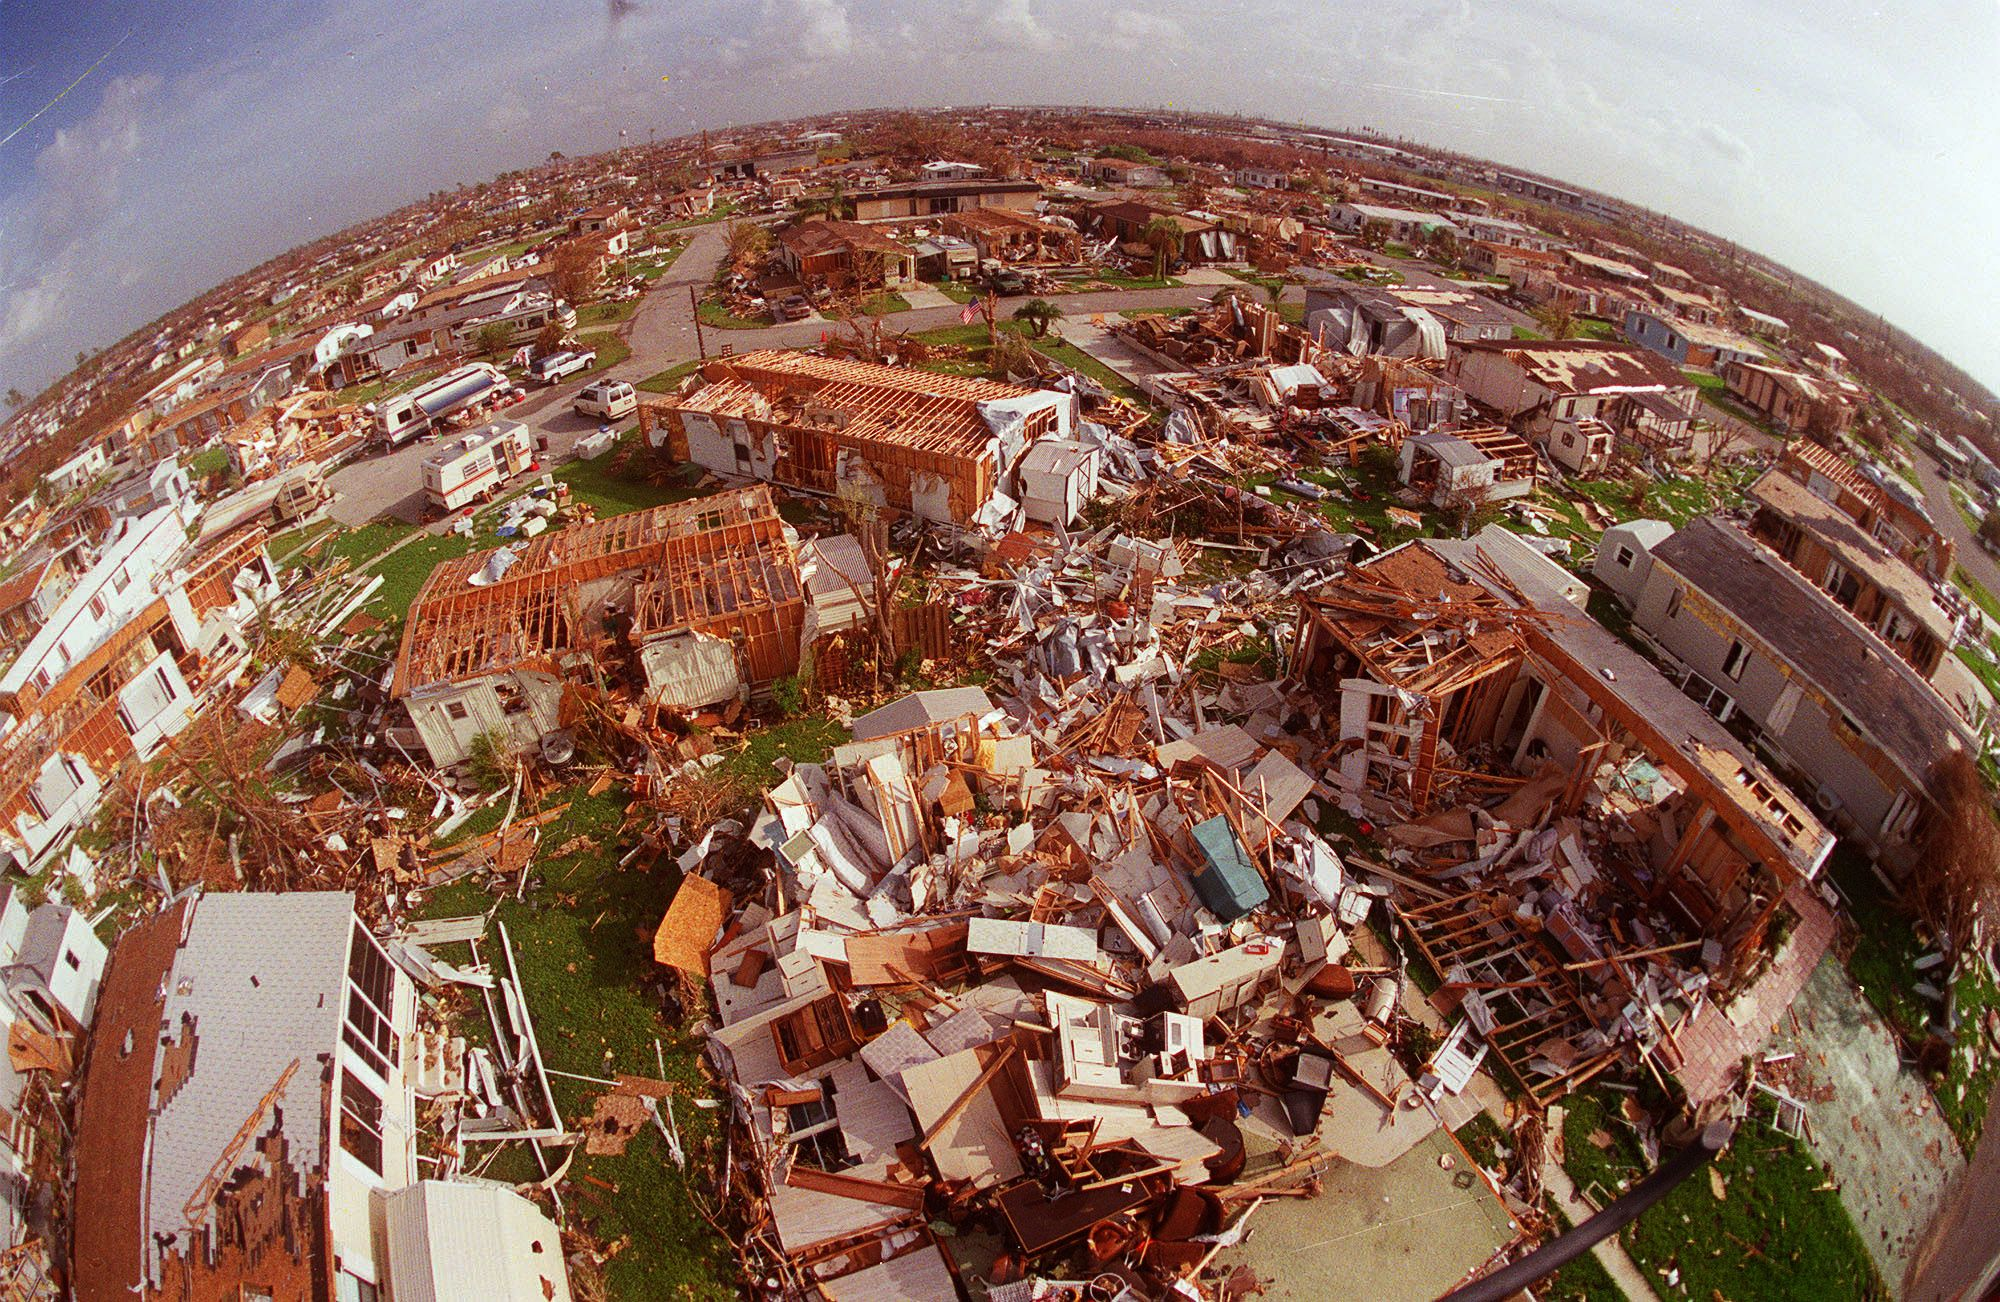 Hurricane Andrew S Legacy Like A Bomb In Florida Hurricane Andrew Florida Hurricane Damage